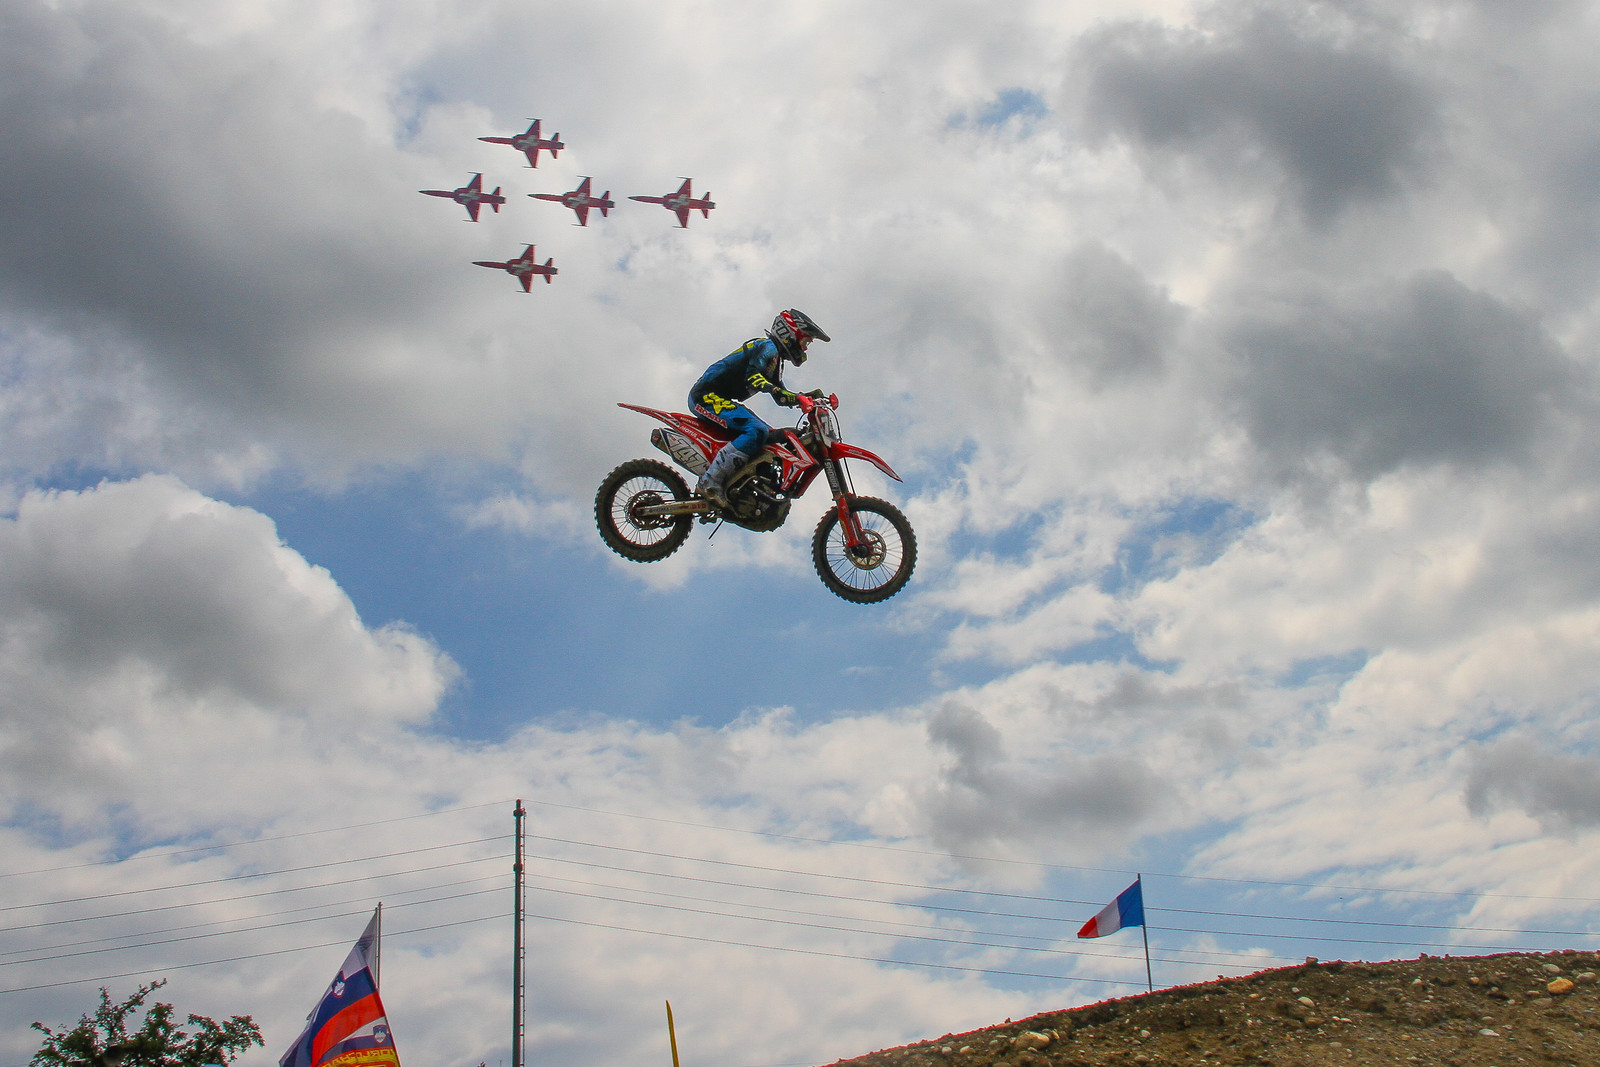 Airplanes - ayearinmx - Motocross Pictures - Vital MX